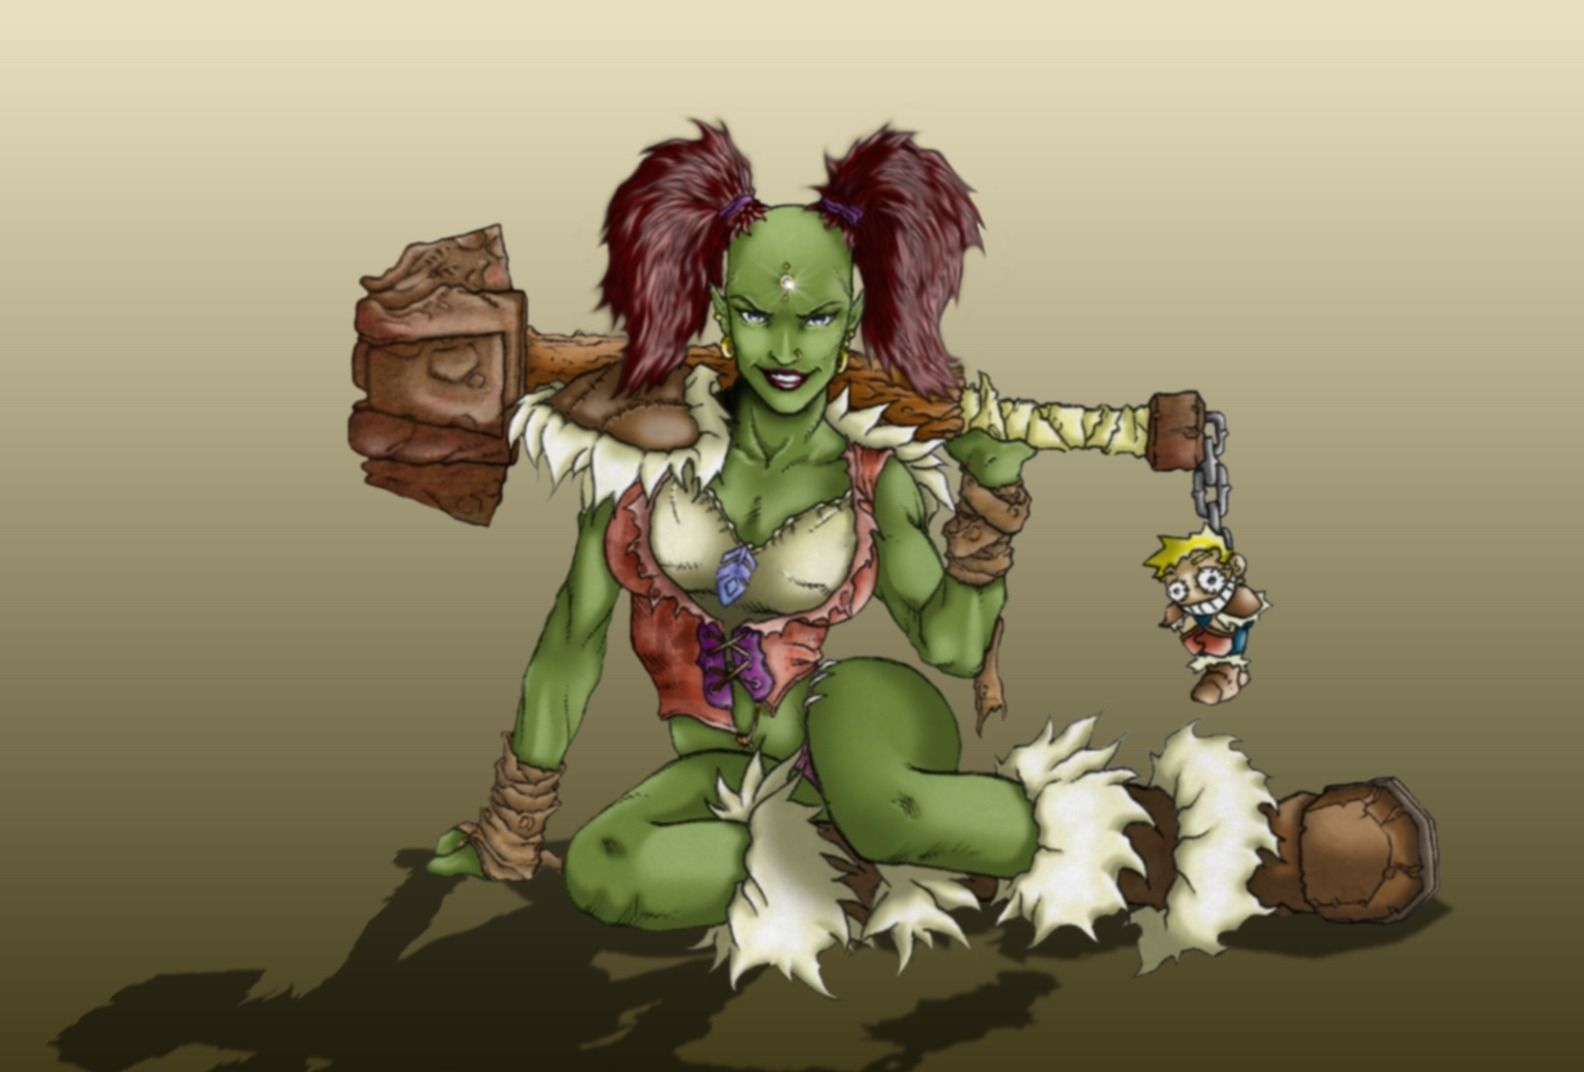 World of warcraft troll and orc porn naked photo